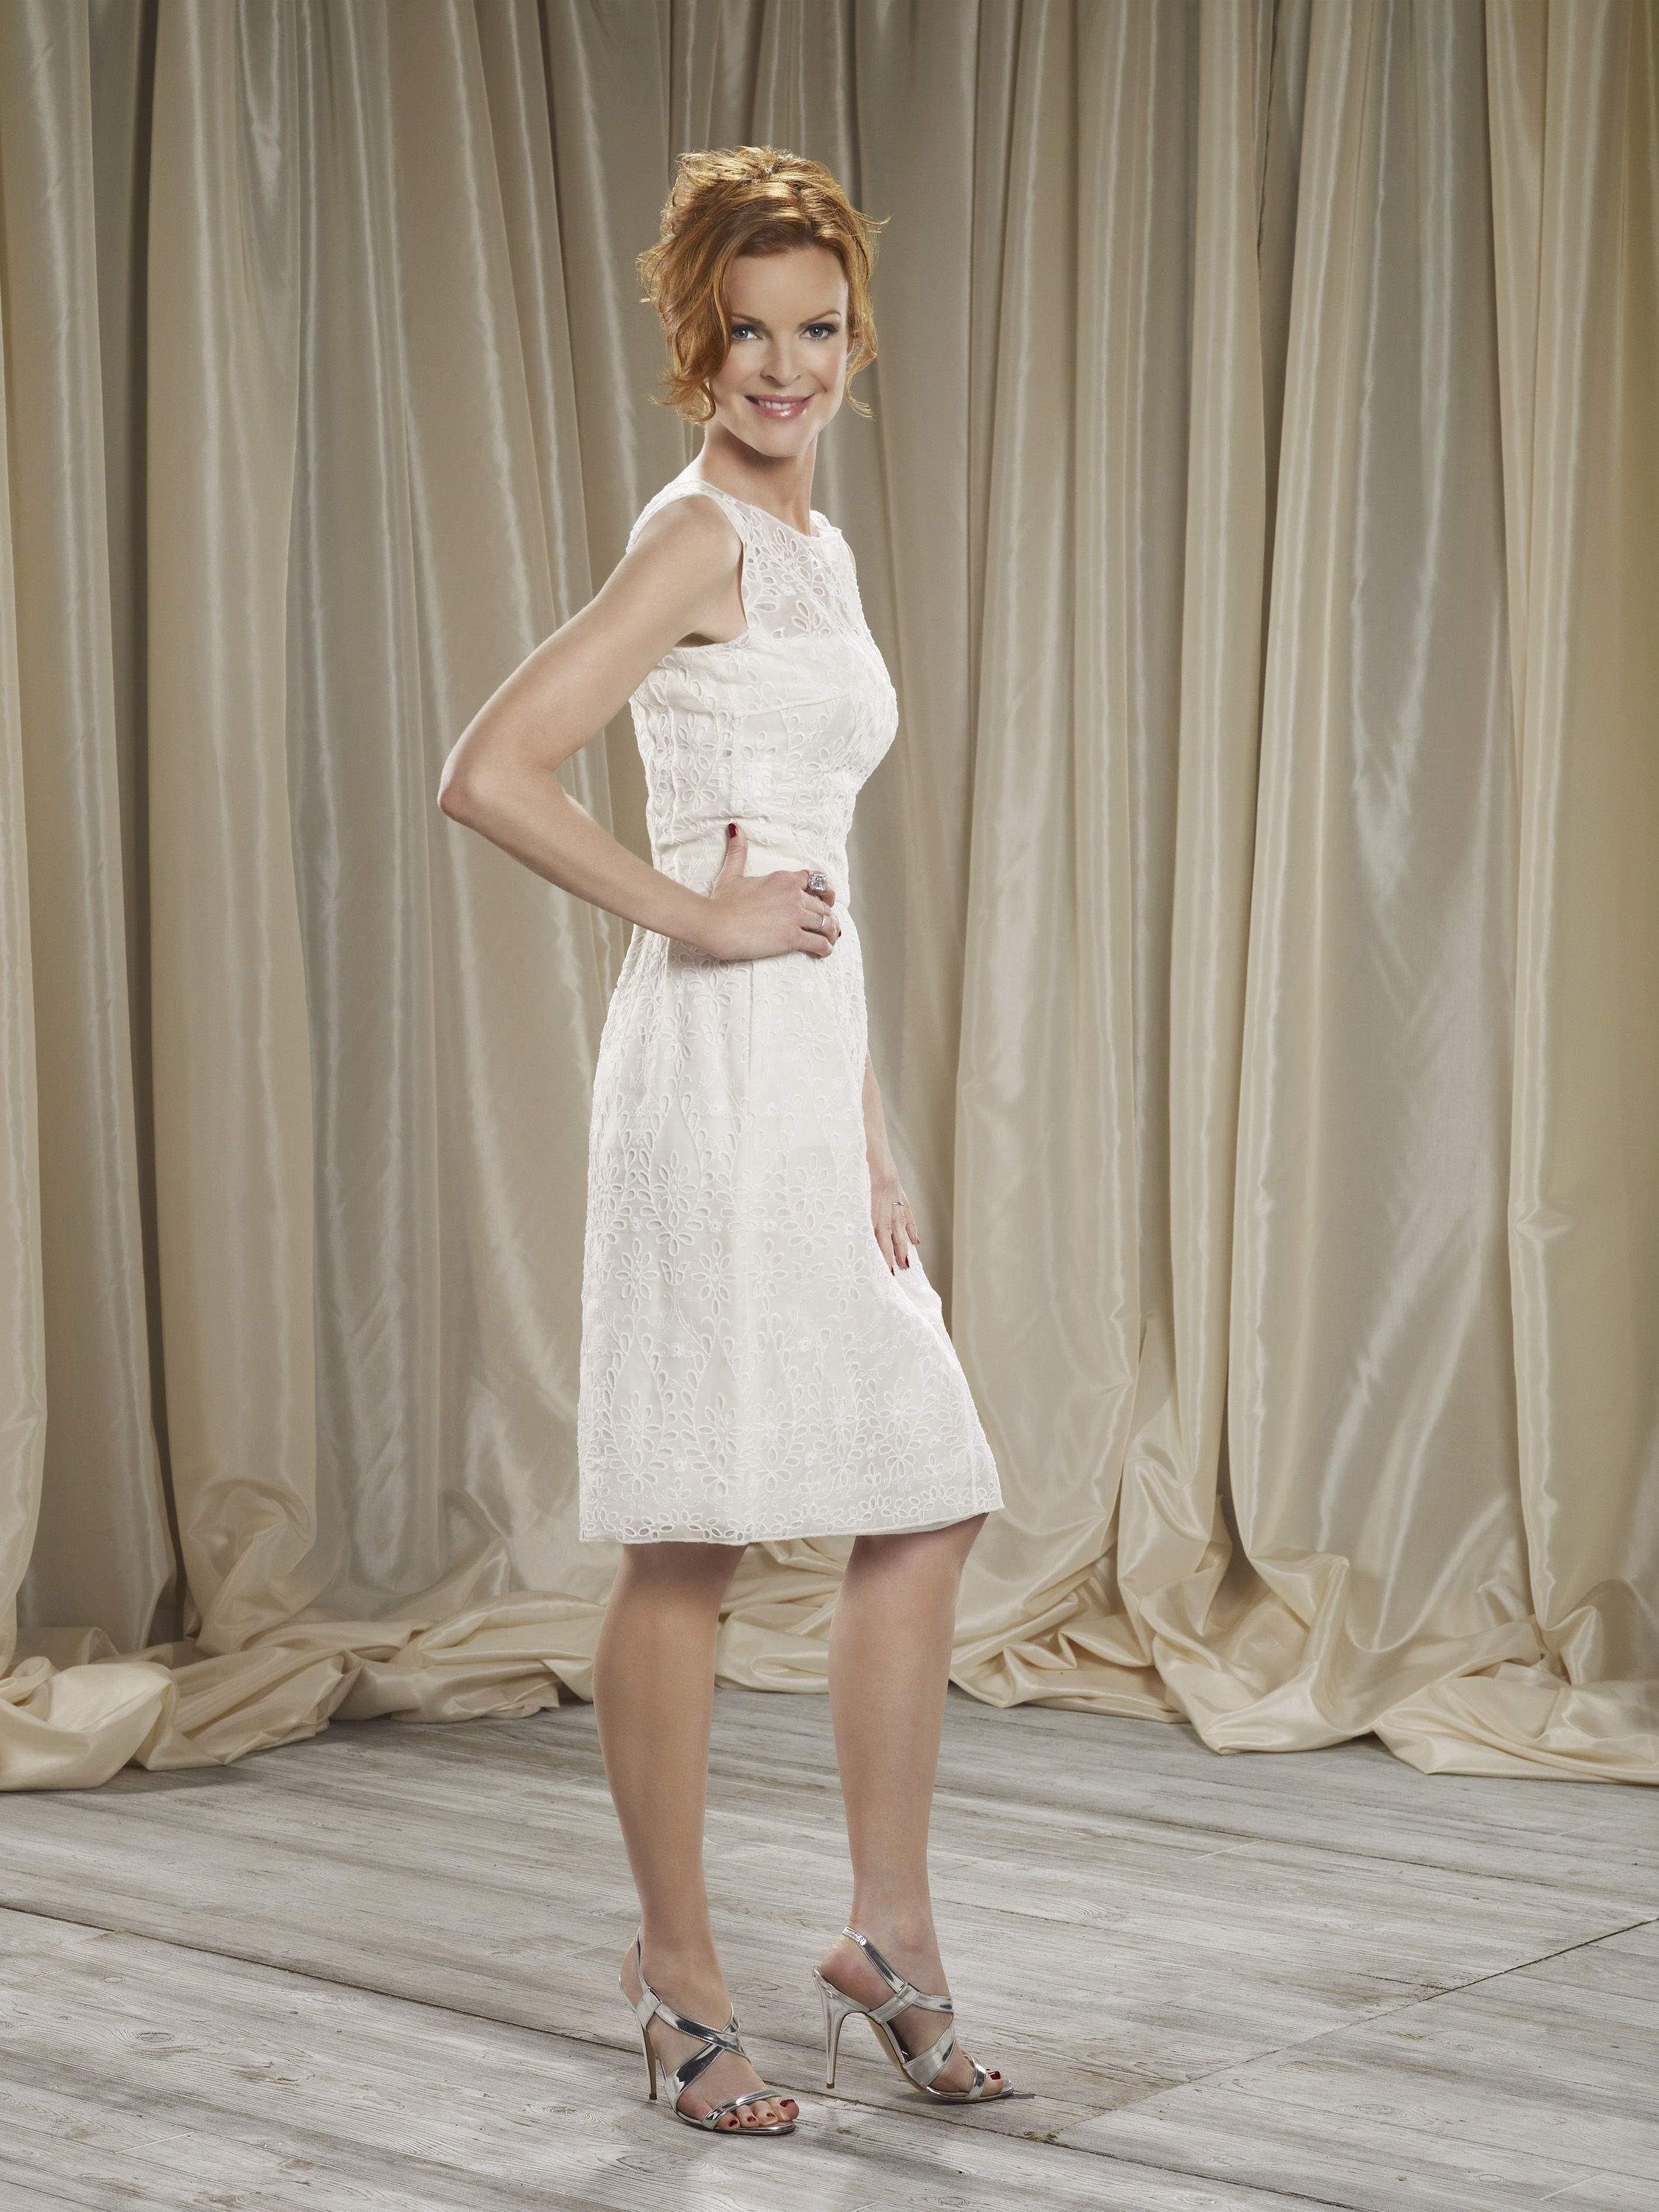 marcia cross young